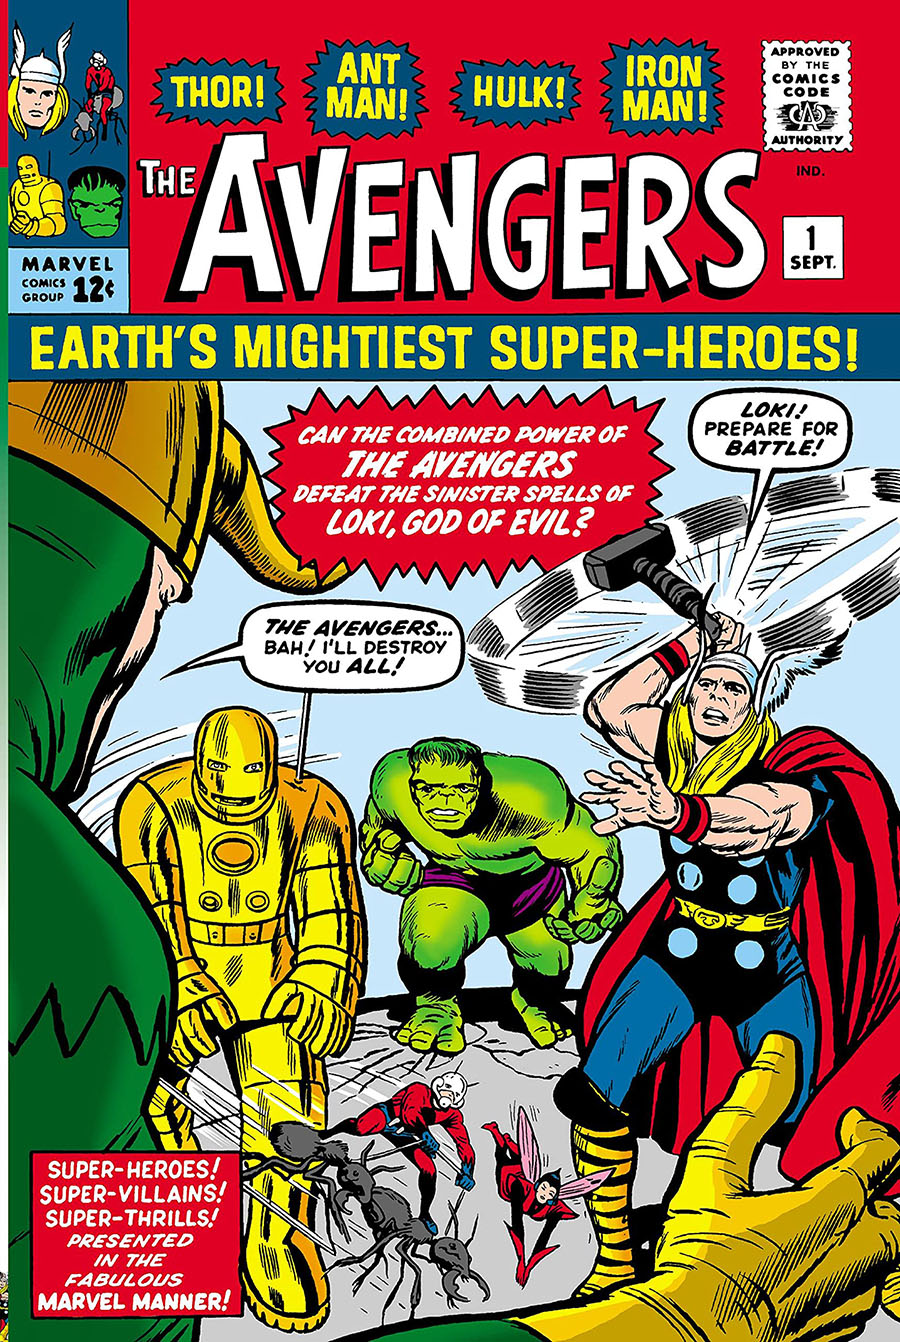 Mighty Marvel Masterworks Avengers Vol 1 Coming Of The Avengers GN Direct Market Jack Kirby Variant Cover